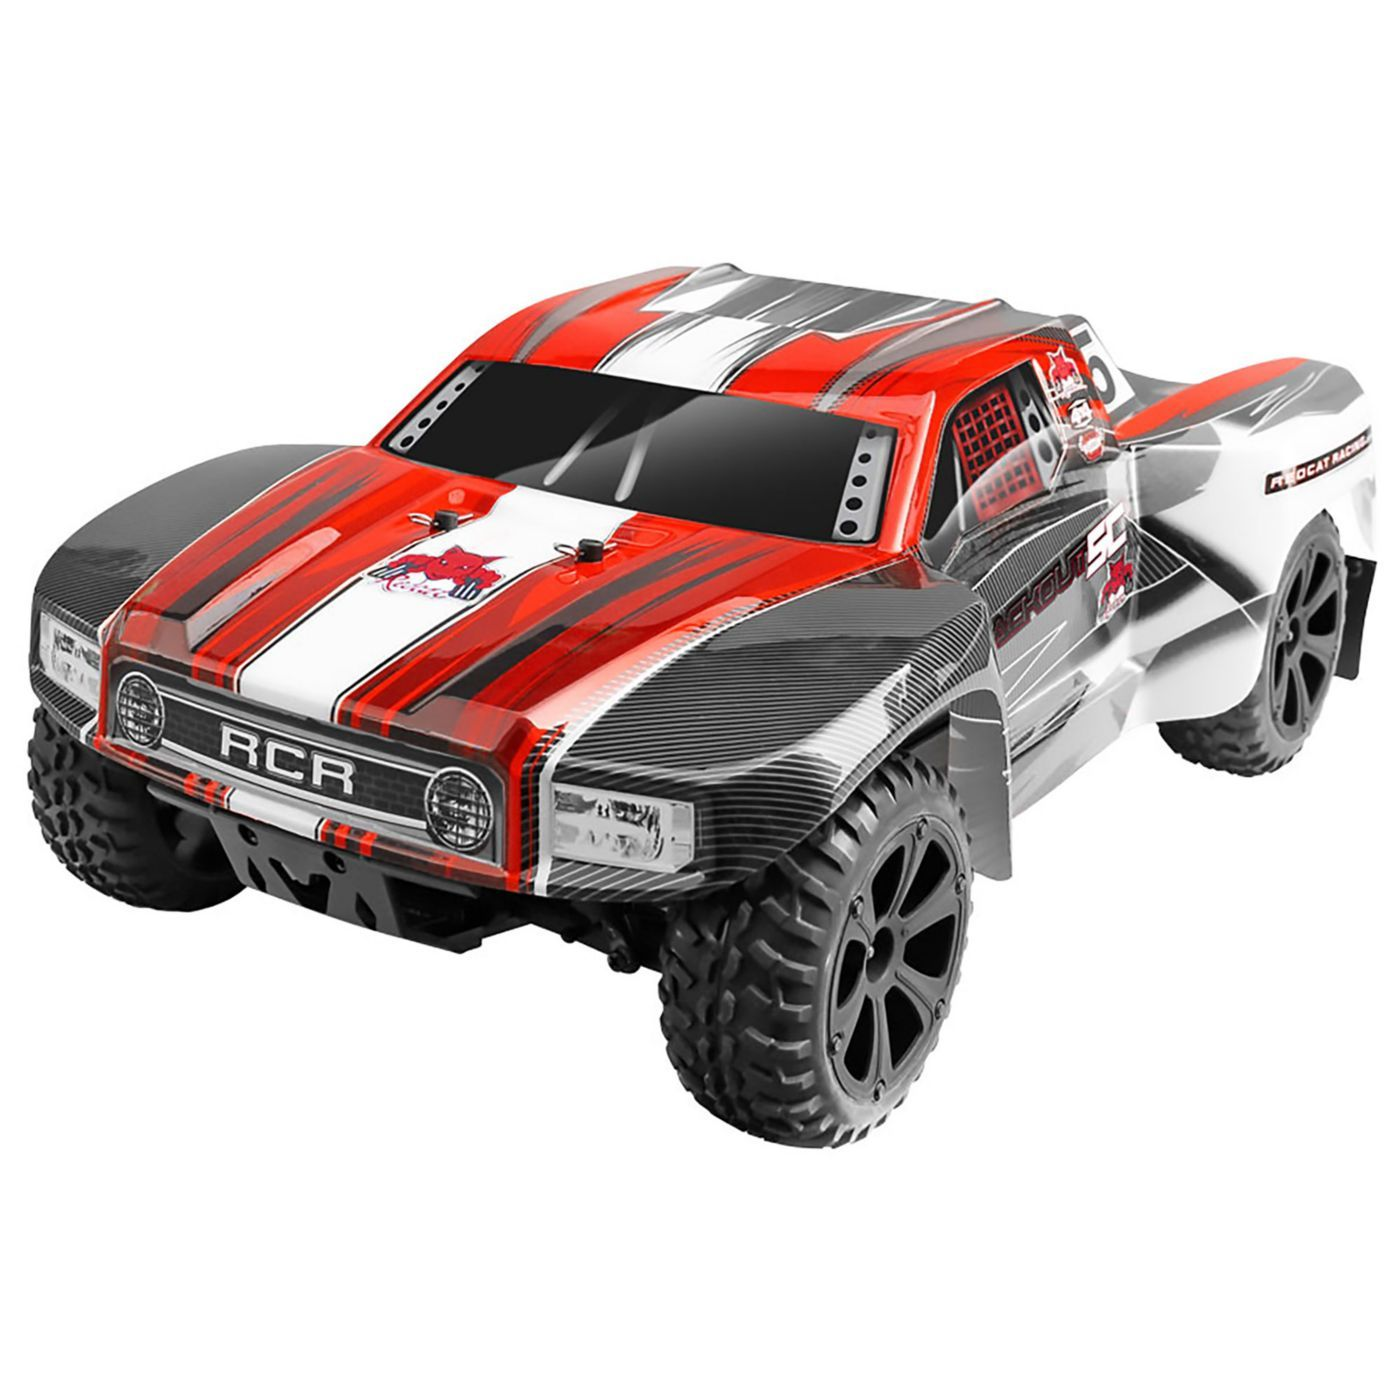 Redcat Racing Blackout SC 1/10 Scale Electric Short Course Truck with Waterproof Electronics Vehicle, Blue review